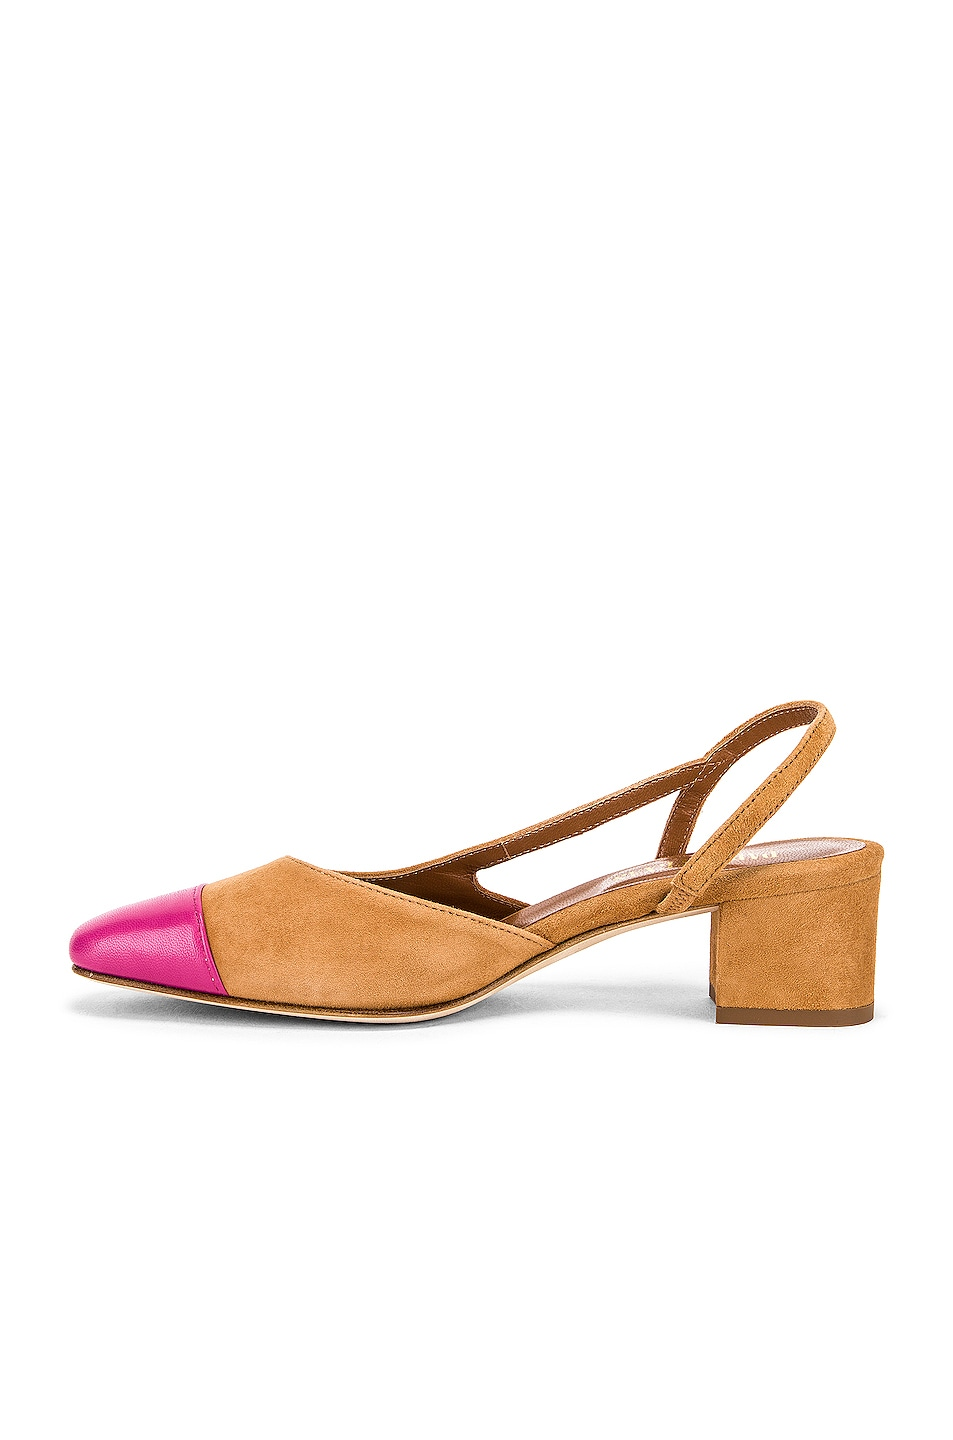 Image 5 of Paris Texas Suede Sling Back in Tan & Pink